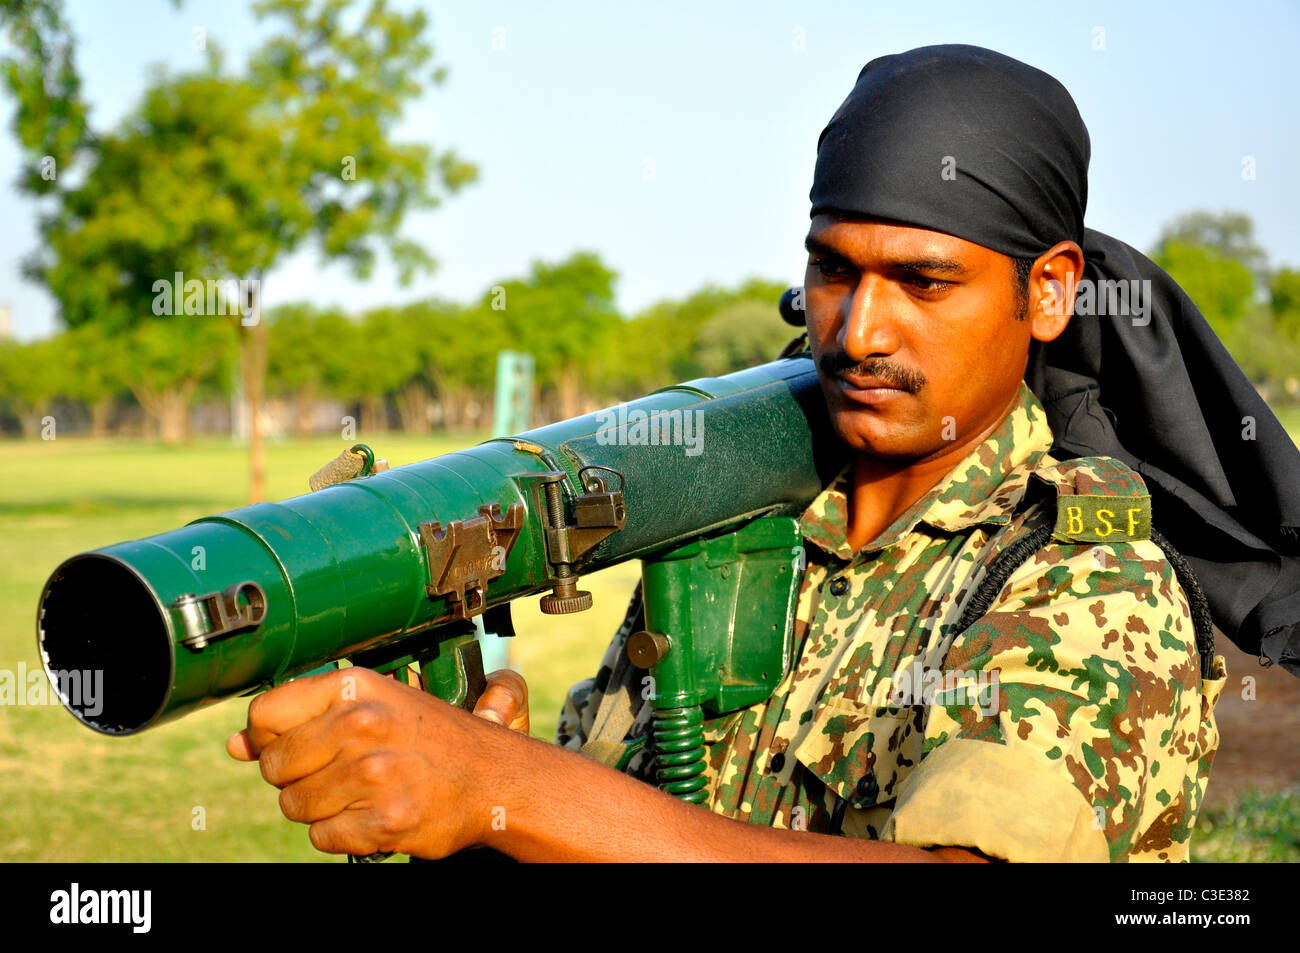 A border security personnel guarding border with rocket launcher - Stock Image